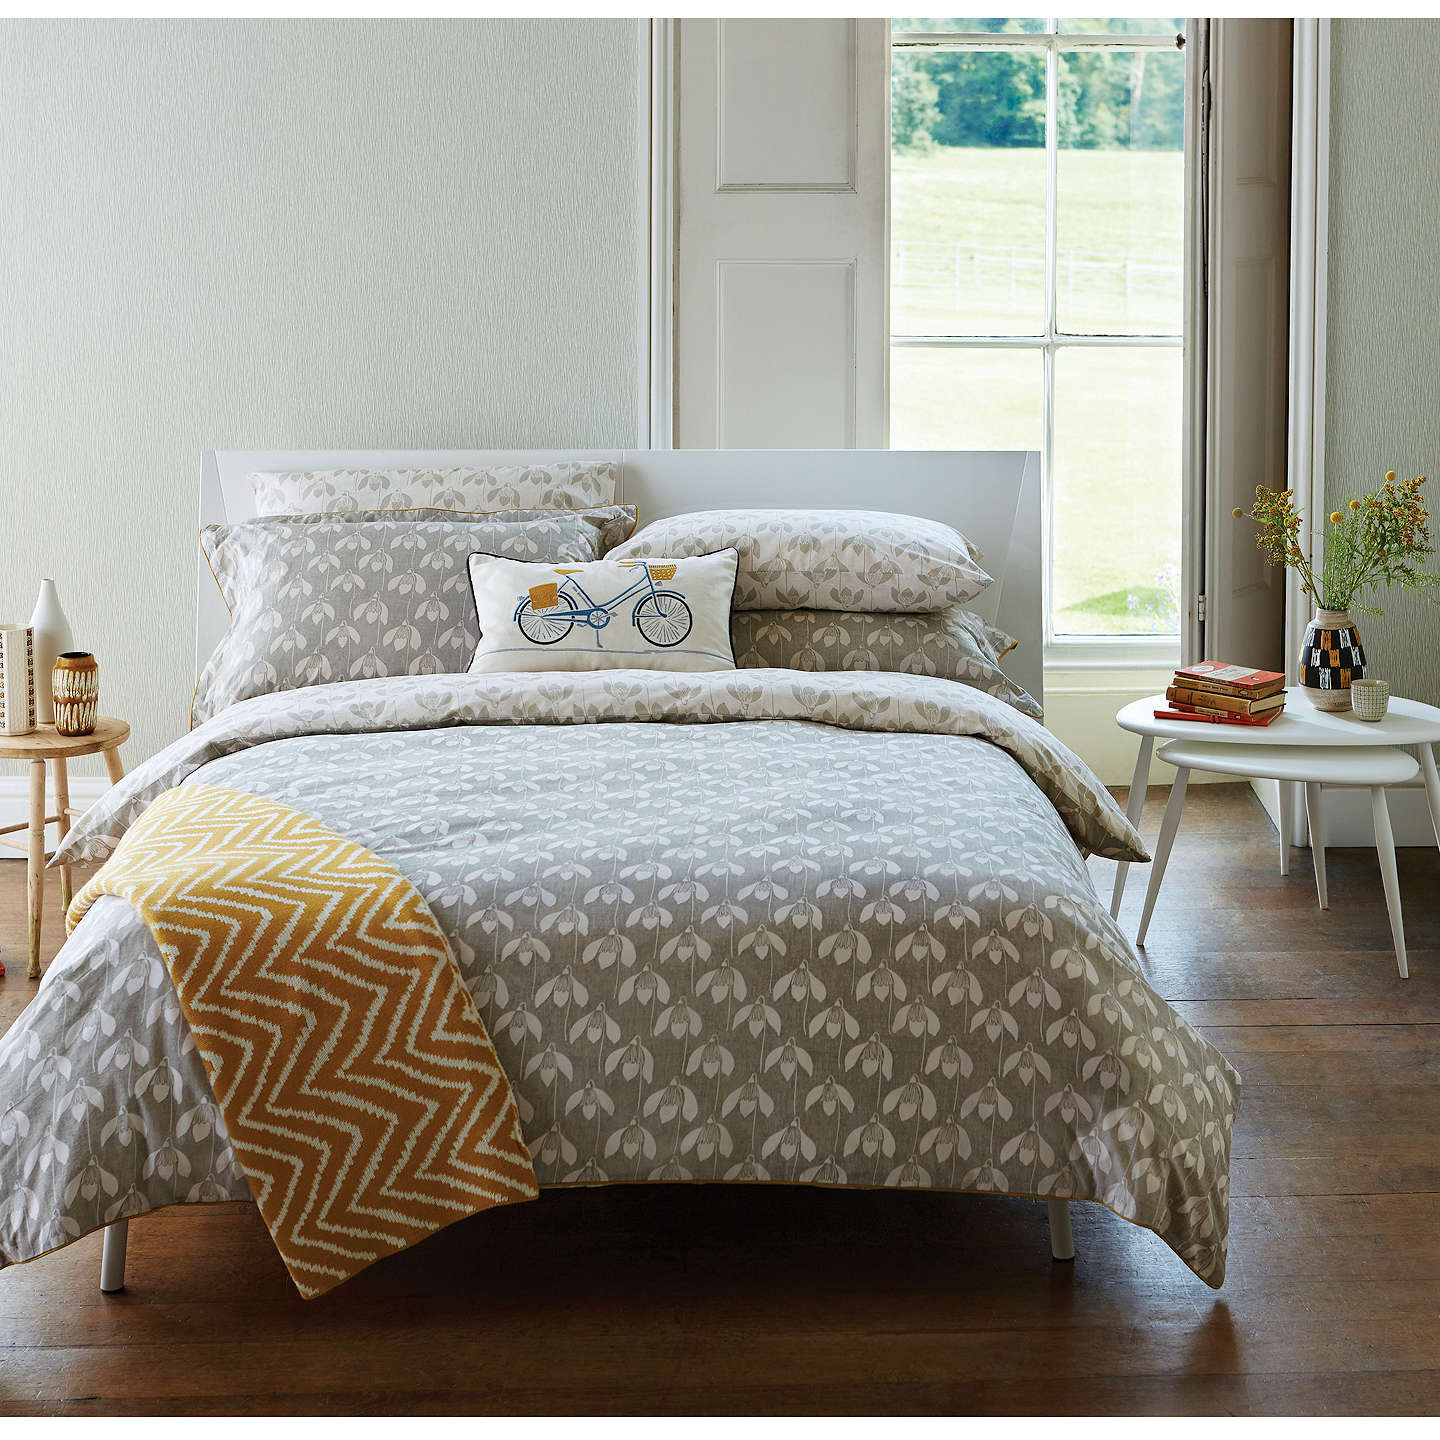 Scion snowdrop bedding at john lewis for Bedroom inspiration john lewis